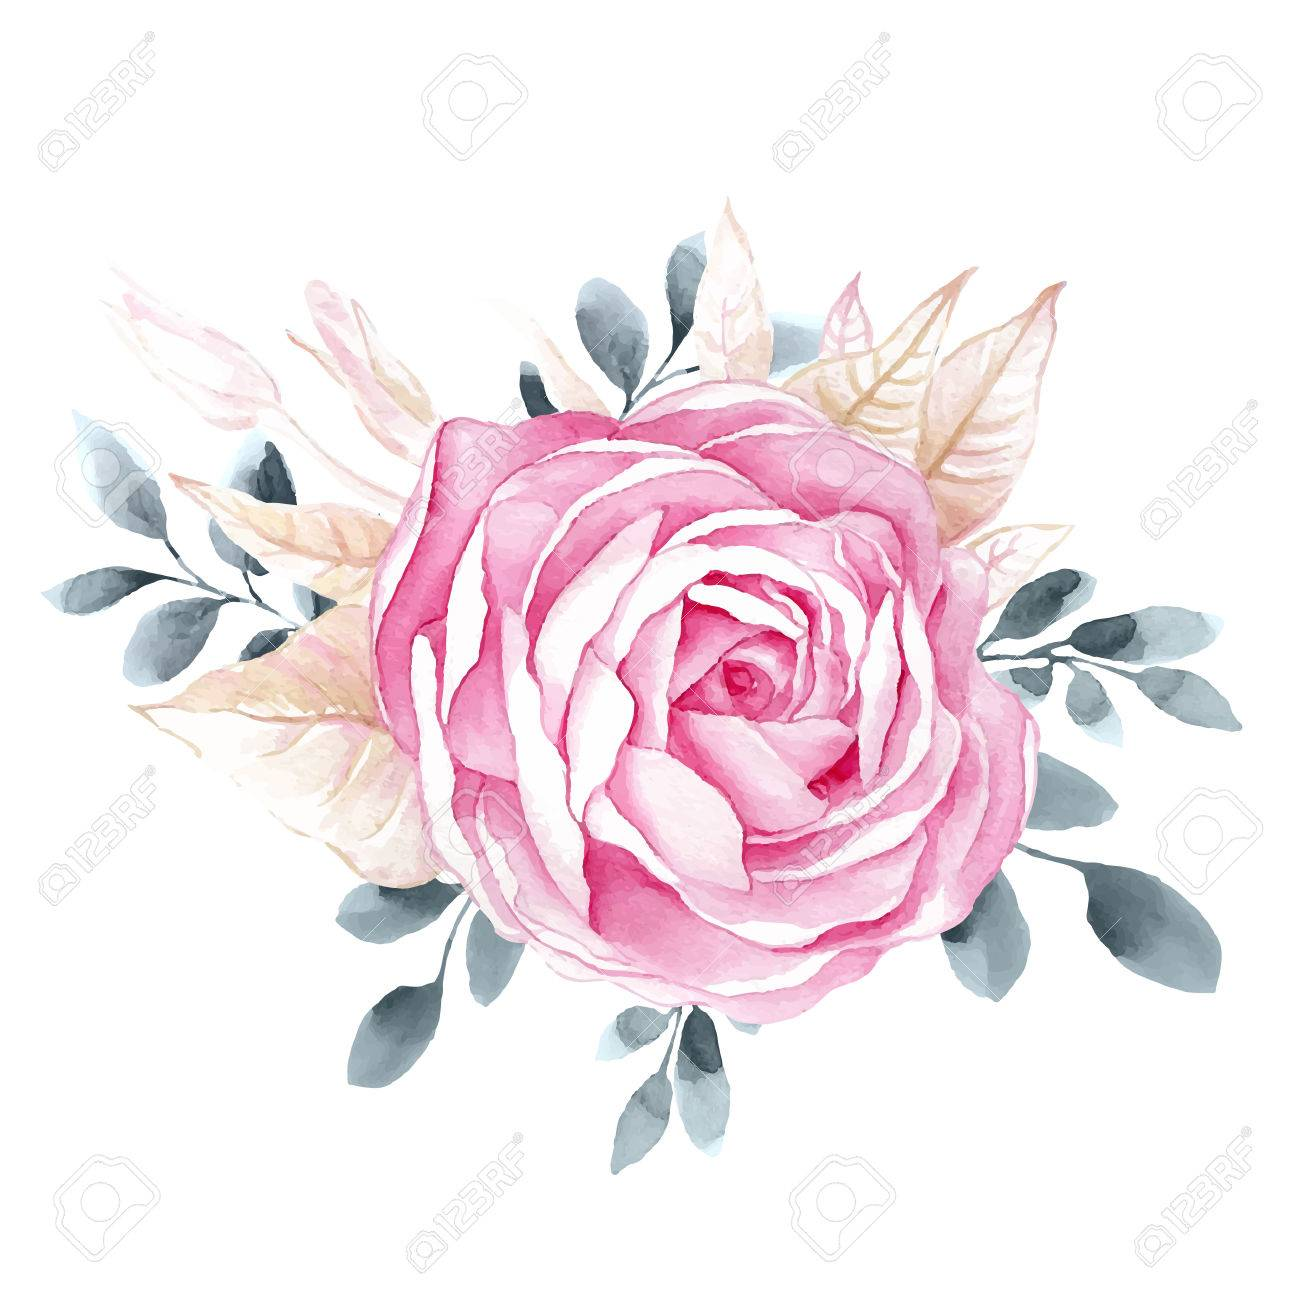 Watercolor illustrations of rose flower isolated on white background. Background for your design and decor. - 51894826